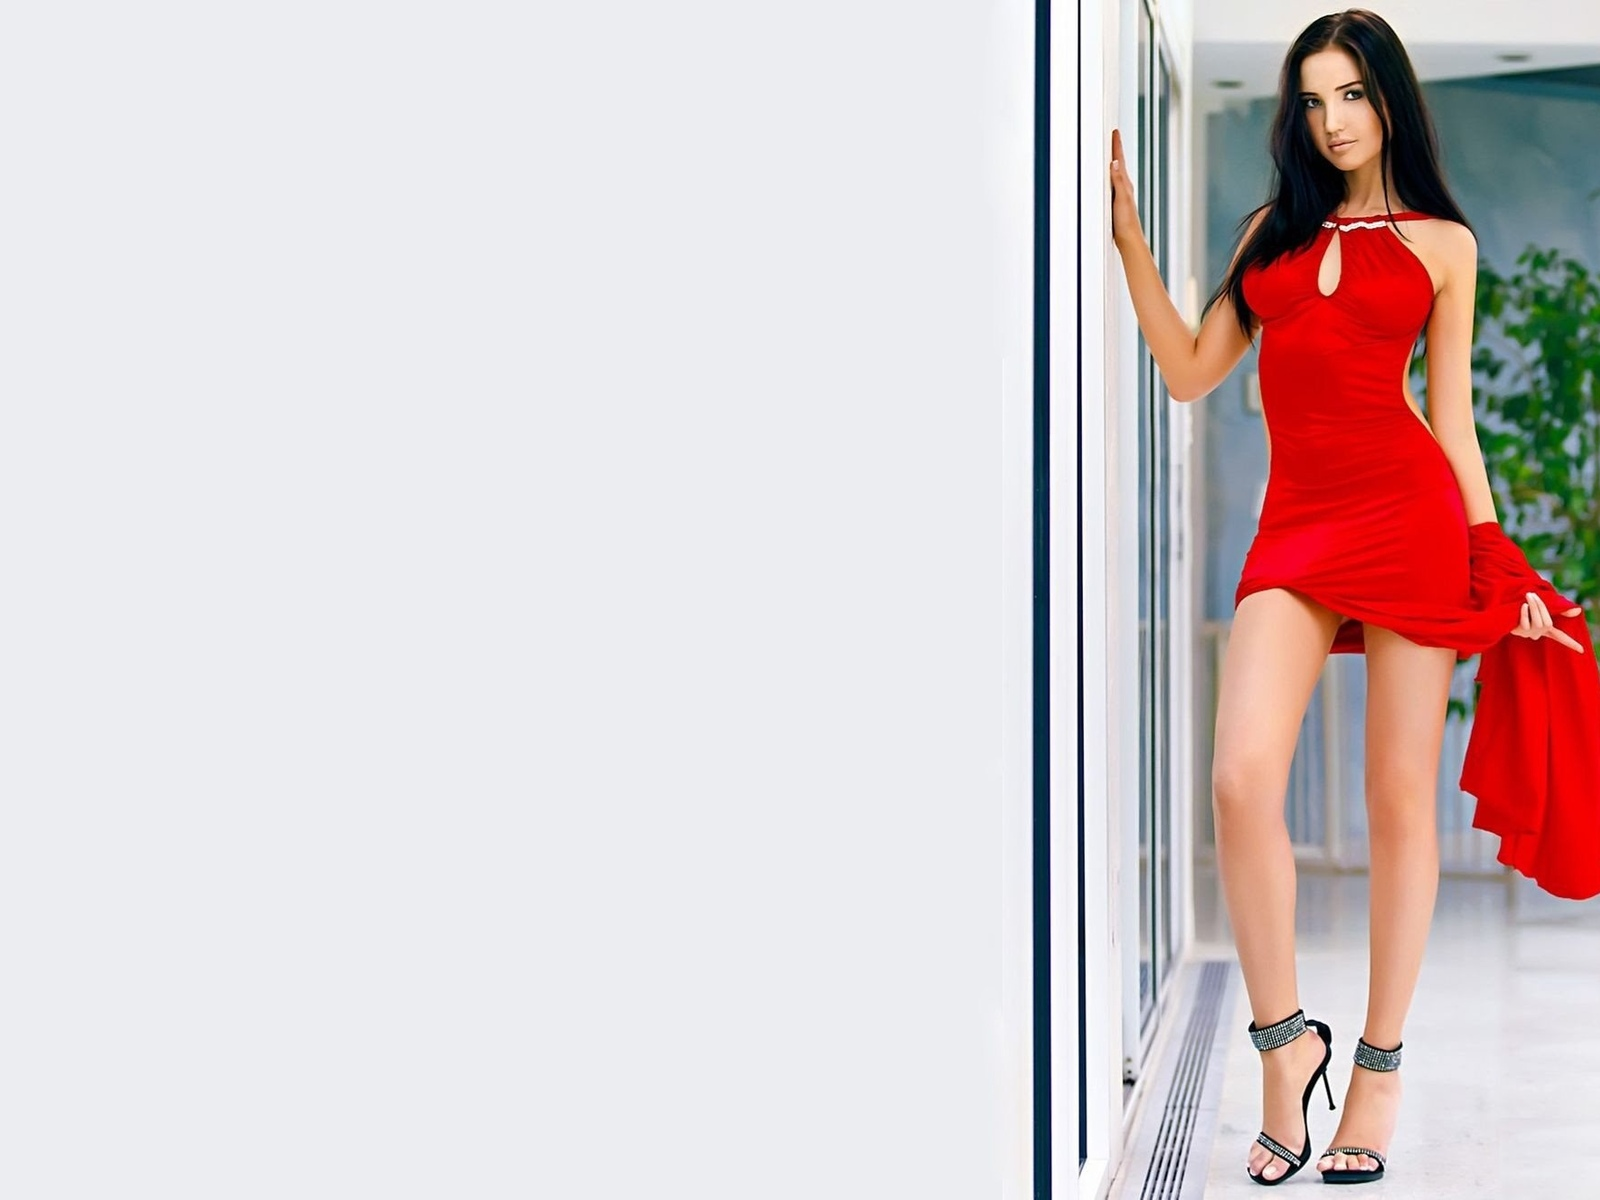 1920x1327 pix allpaper lina ladsome, brunette, legs, high heels, red dress, models our esolution 1680x1050 ownload ource mage 1920x1327 alina gladsome, brunette, legs, high heels, red dress, models